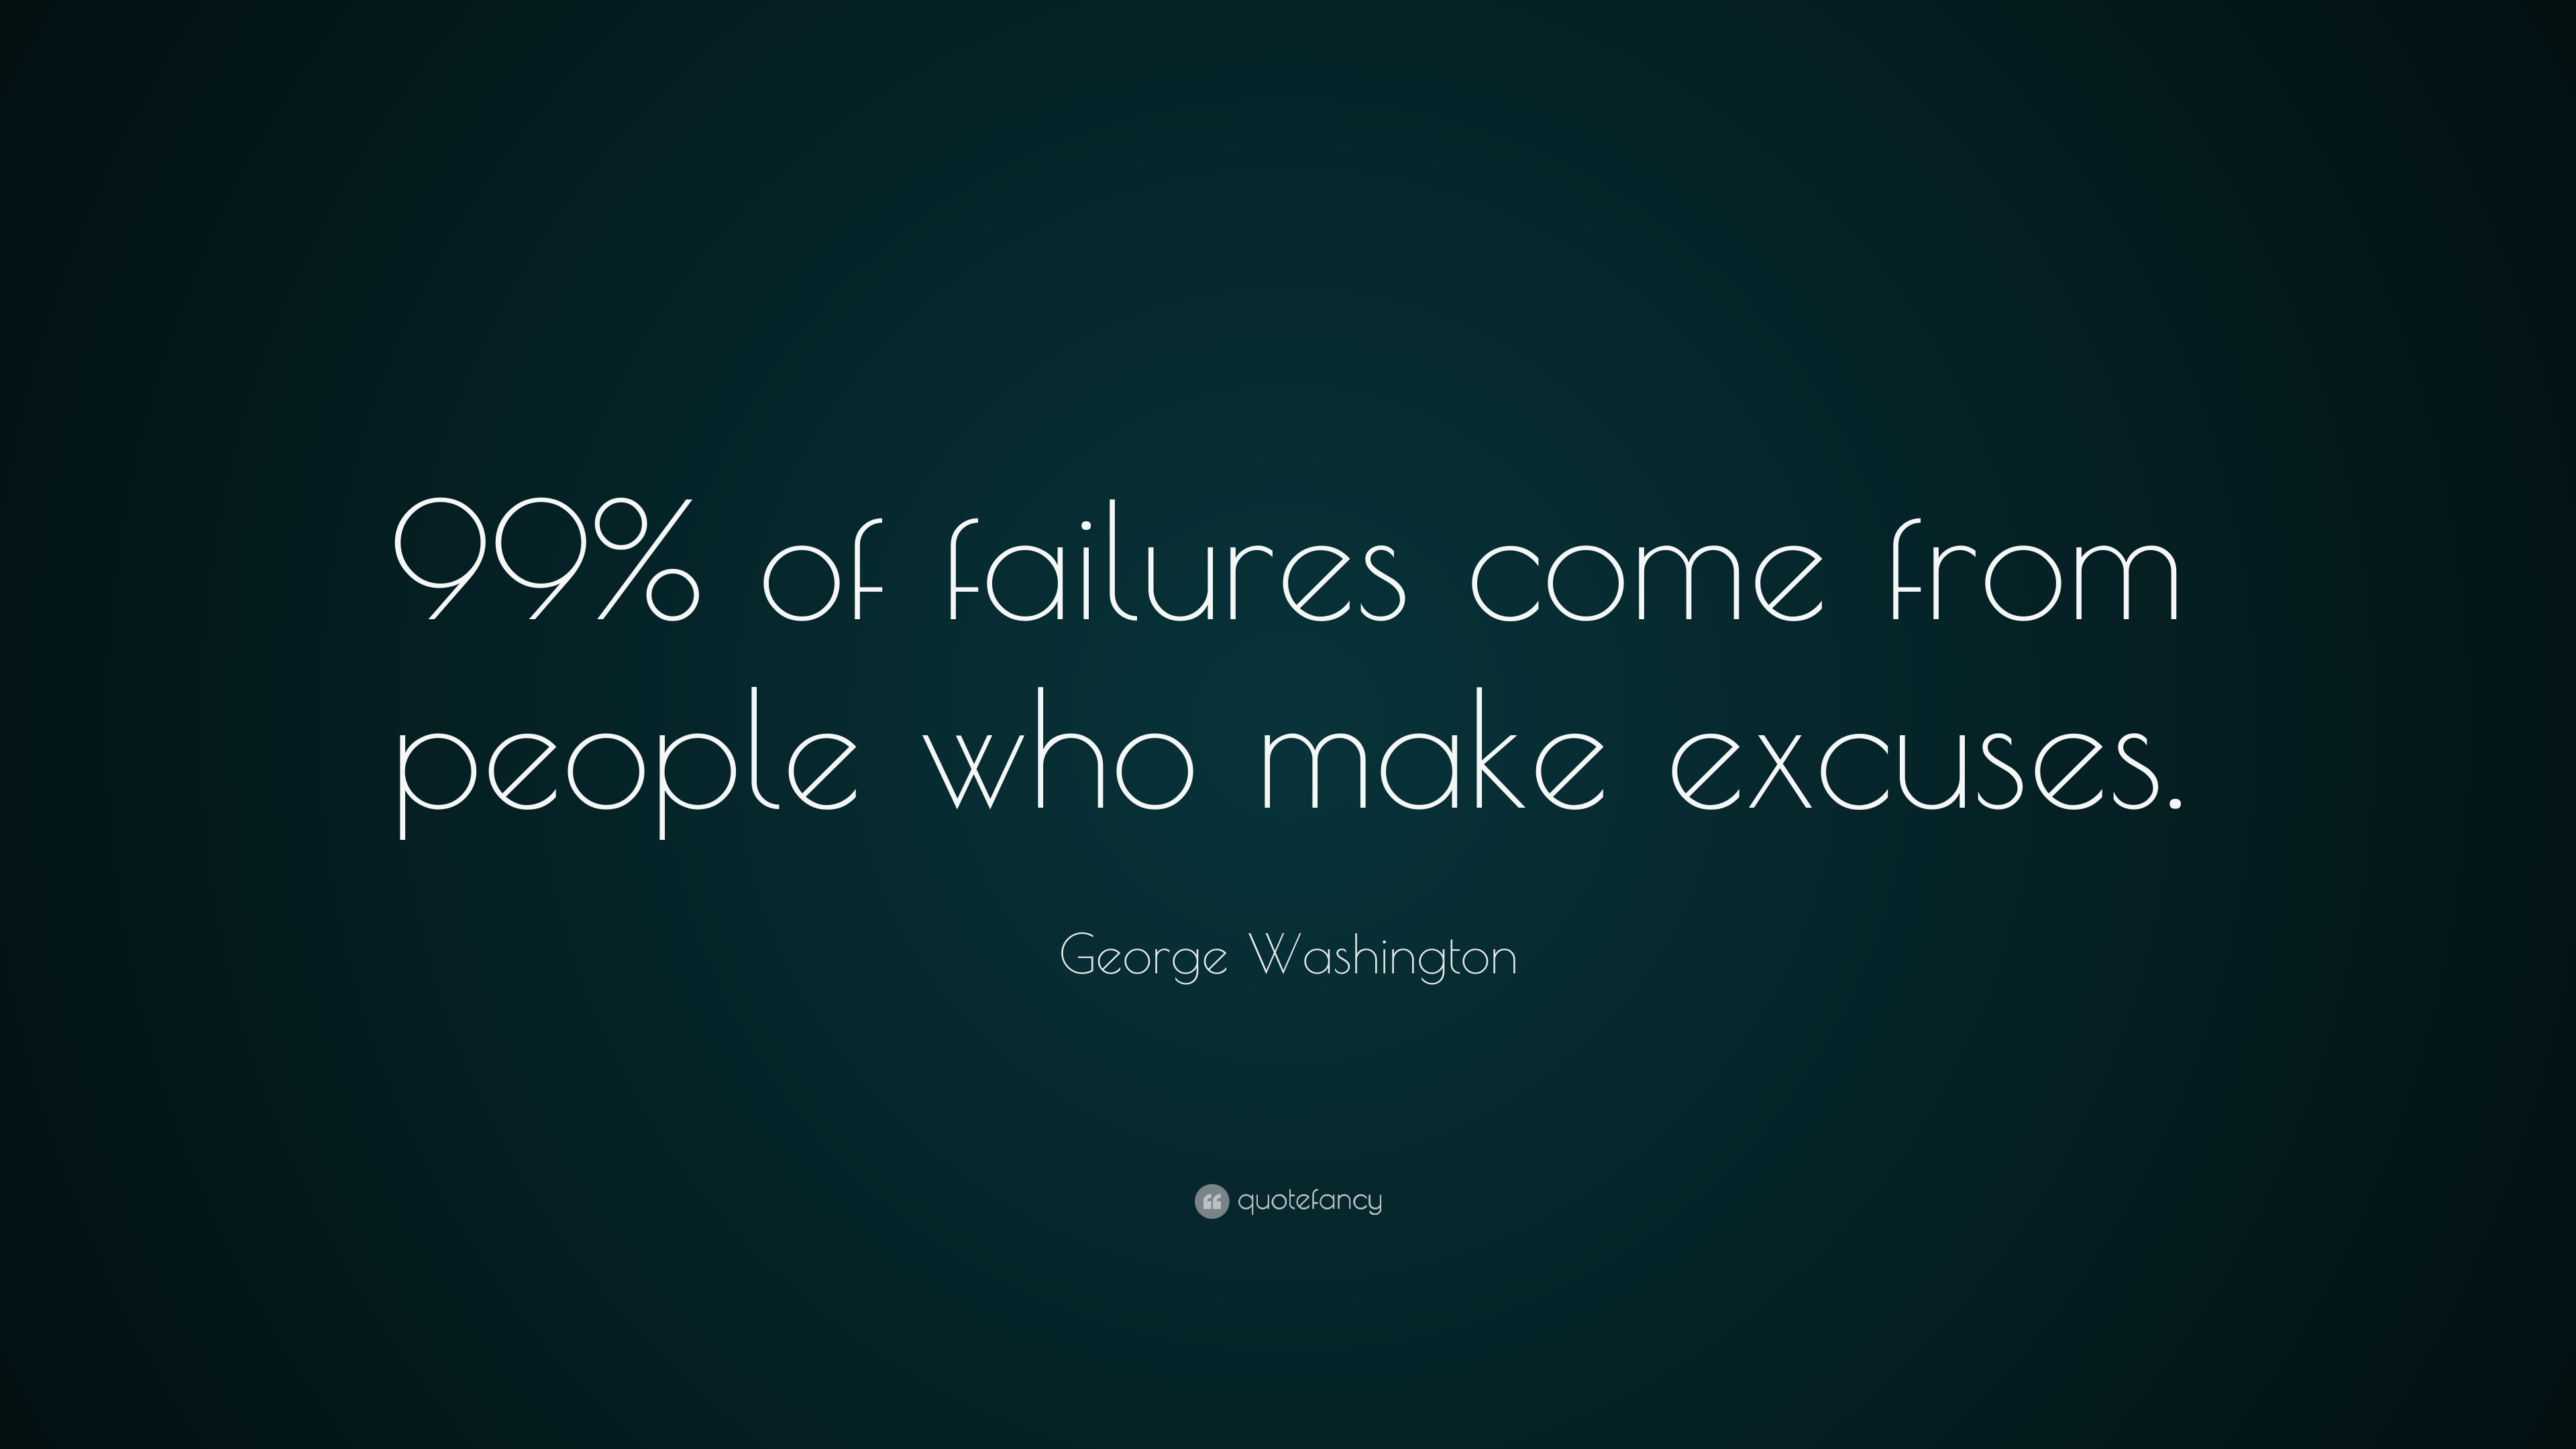 Theodore Roosevelt Wallpaper Quote George Washington Quote 99 Of Failures Come From People